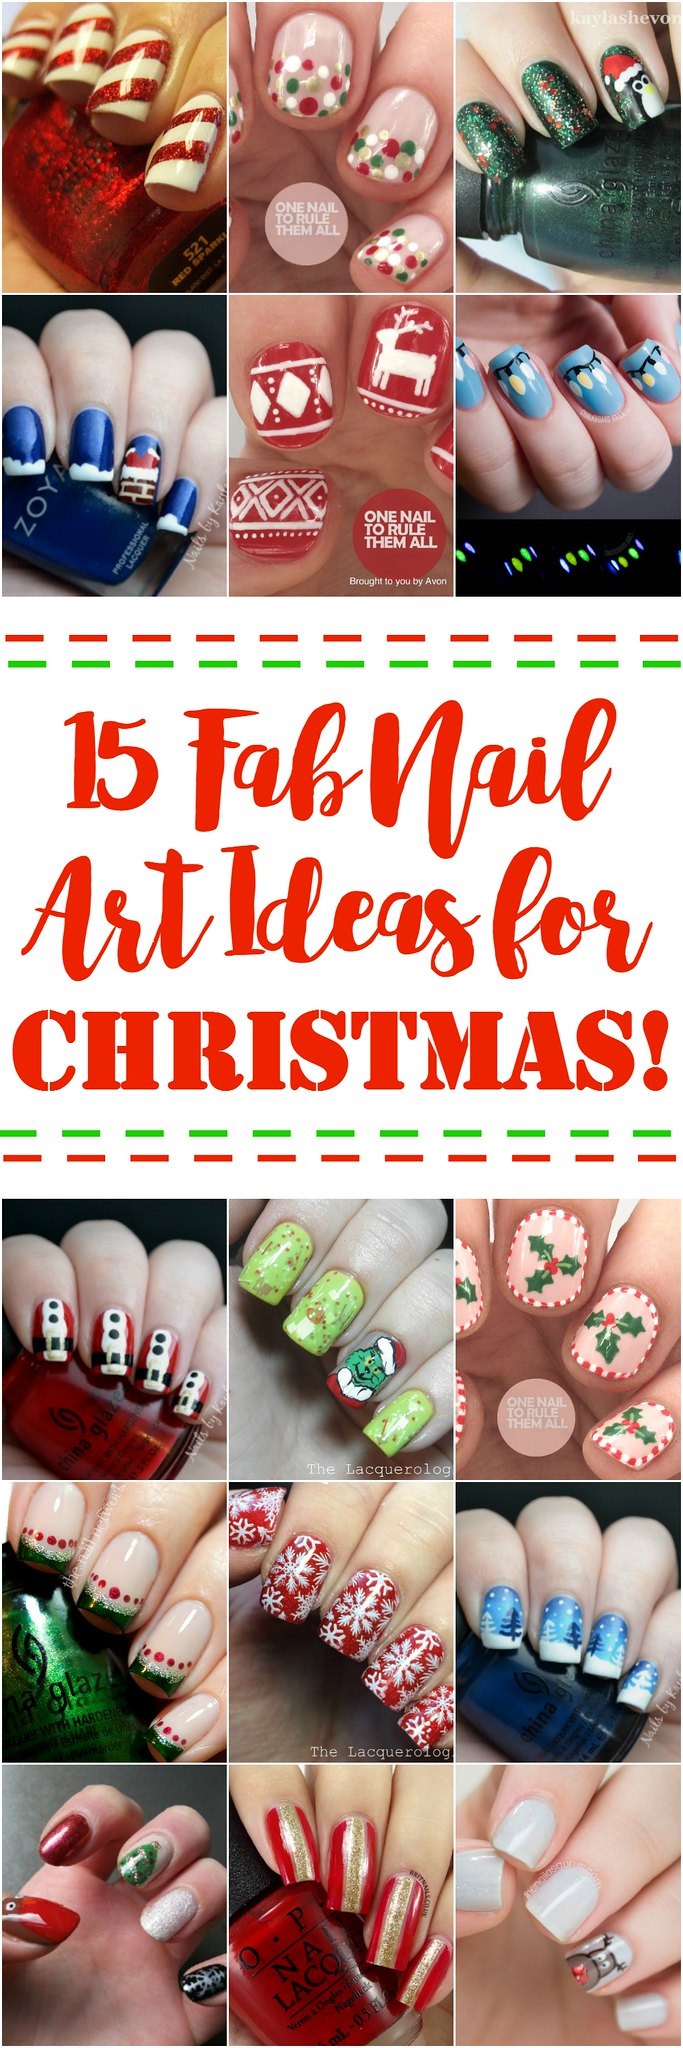 15 Fab Nail Art Ideas For Christmas